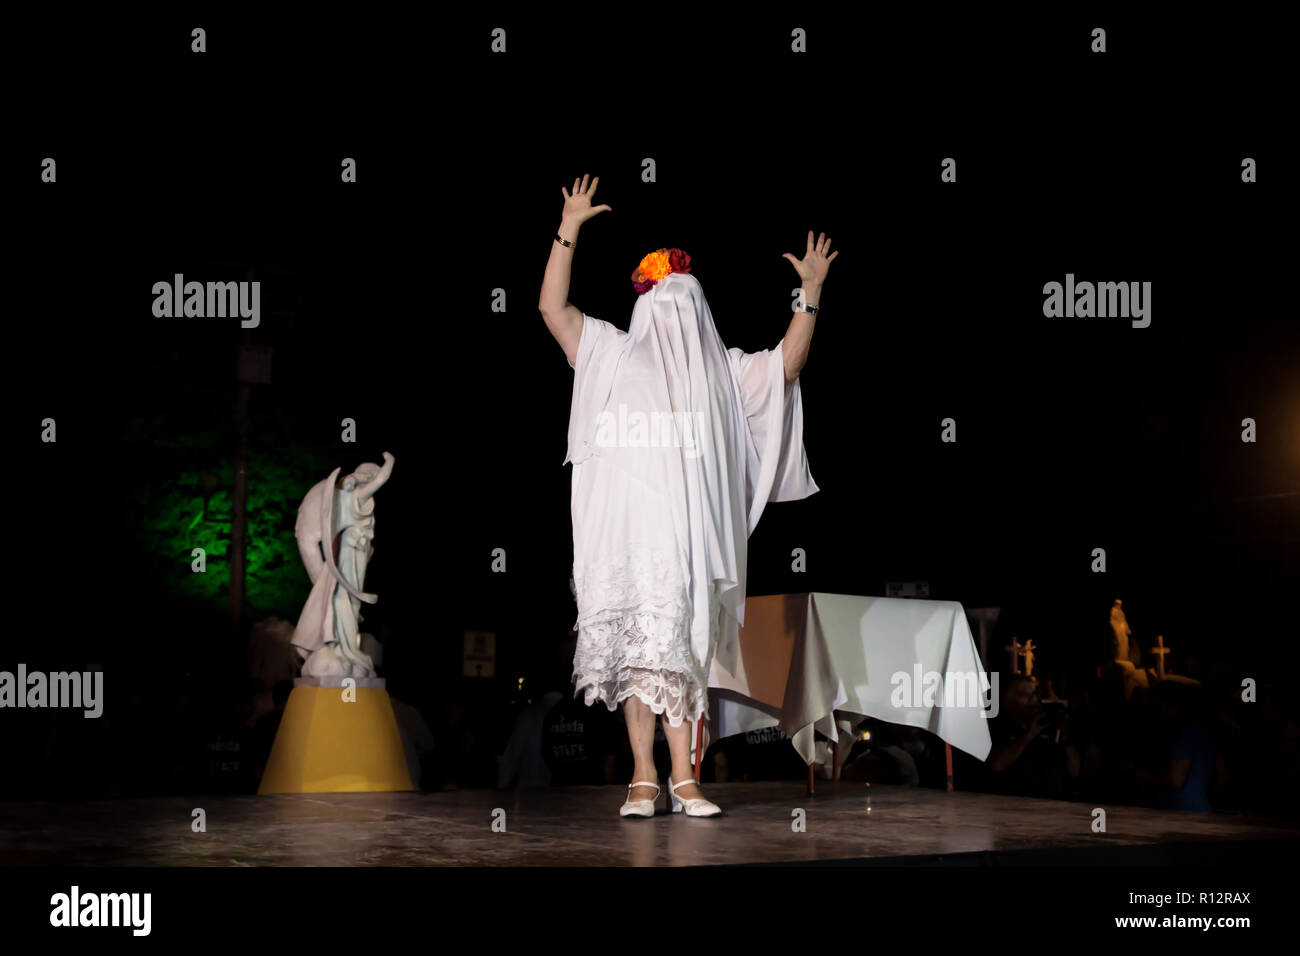 Merida, Cementerio General, Mexico - 31 October 2018: Woman with ghost costume and skull make-up introducing the procession and parade for dia de los  - Stock Image